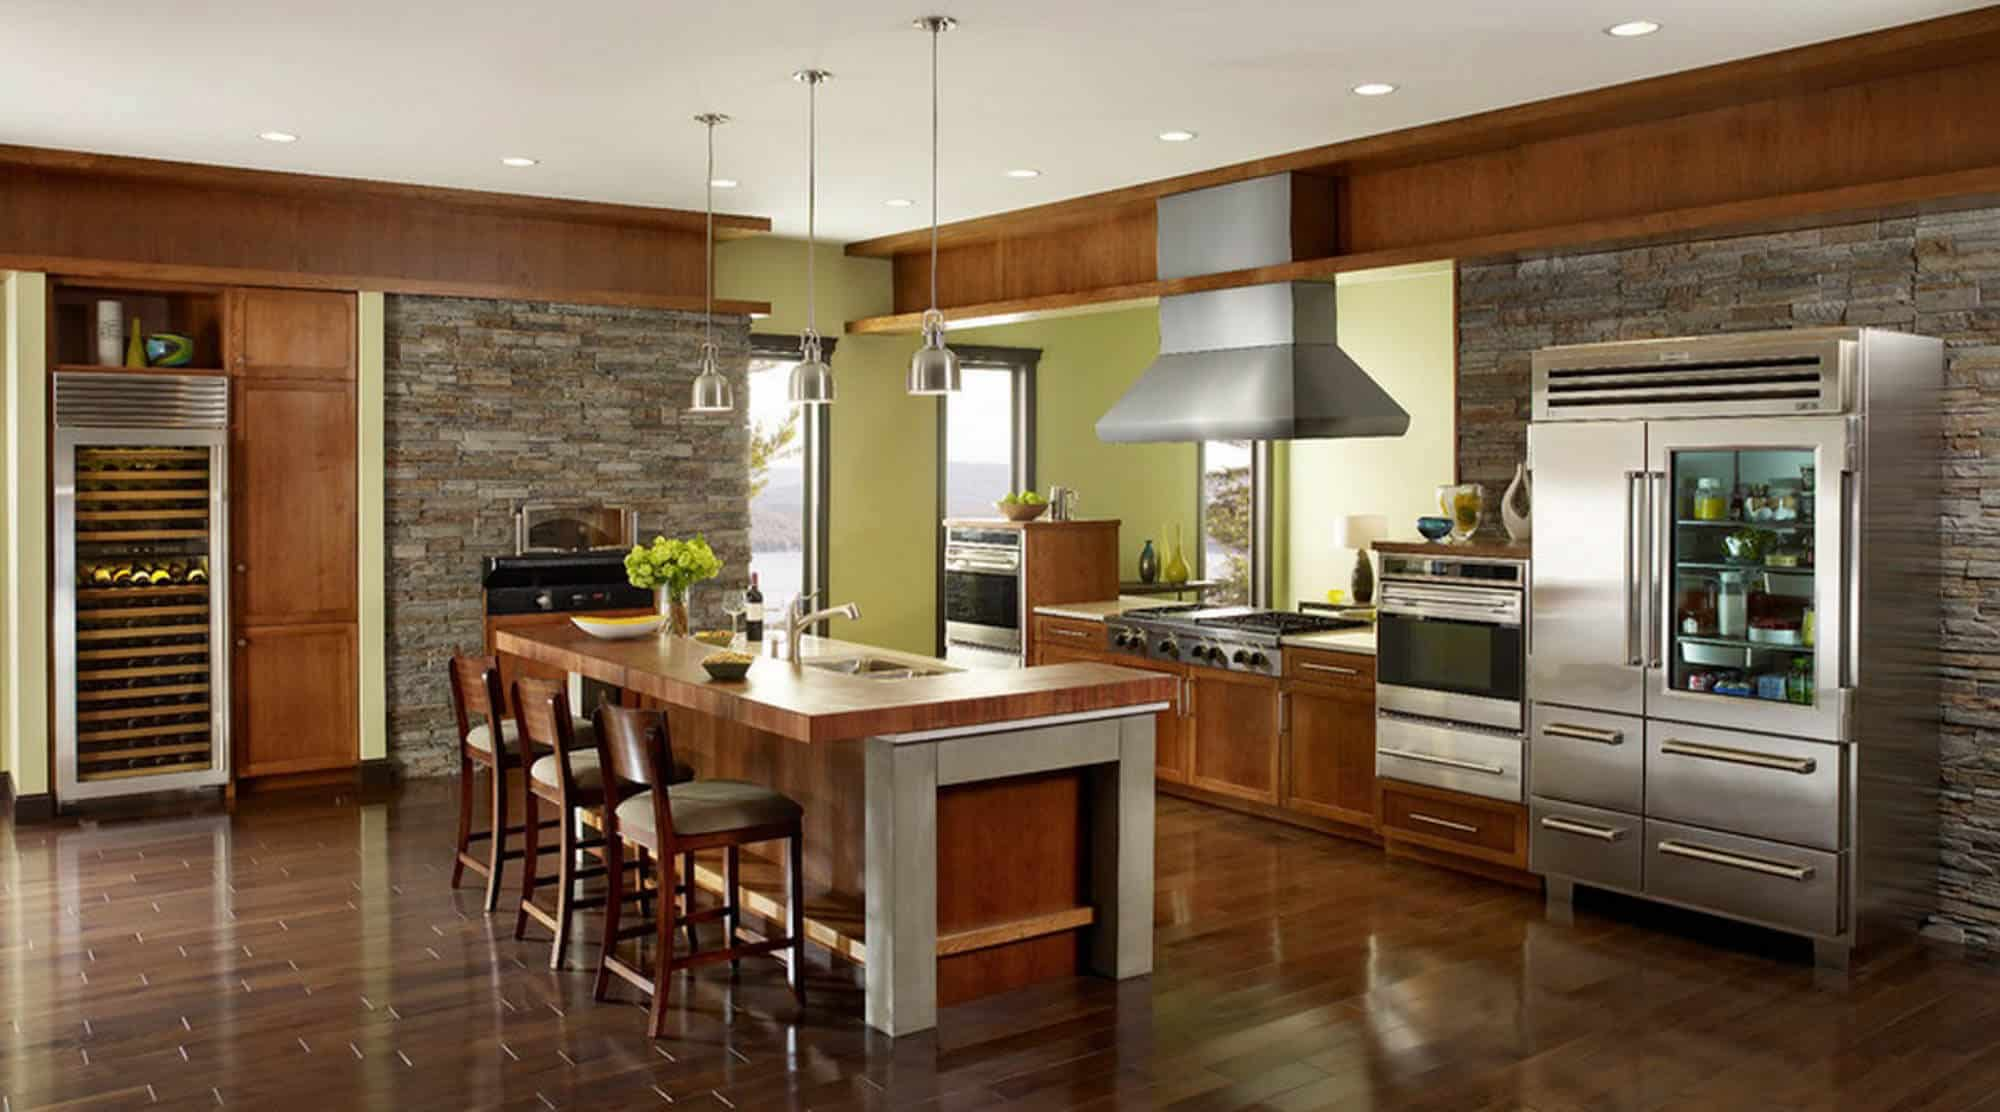 kitchen decor style ideas gentleman s gazette